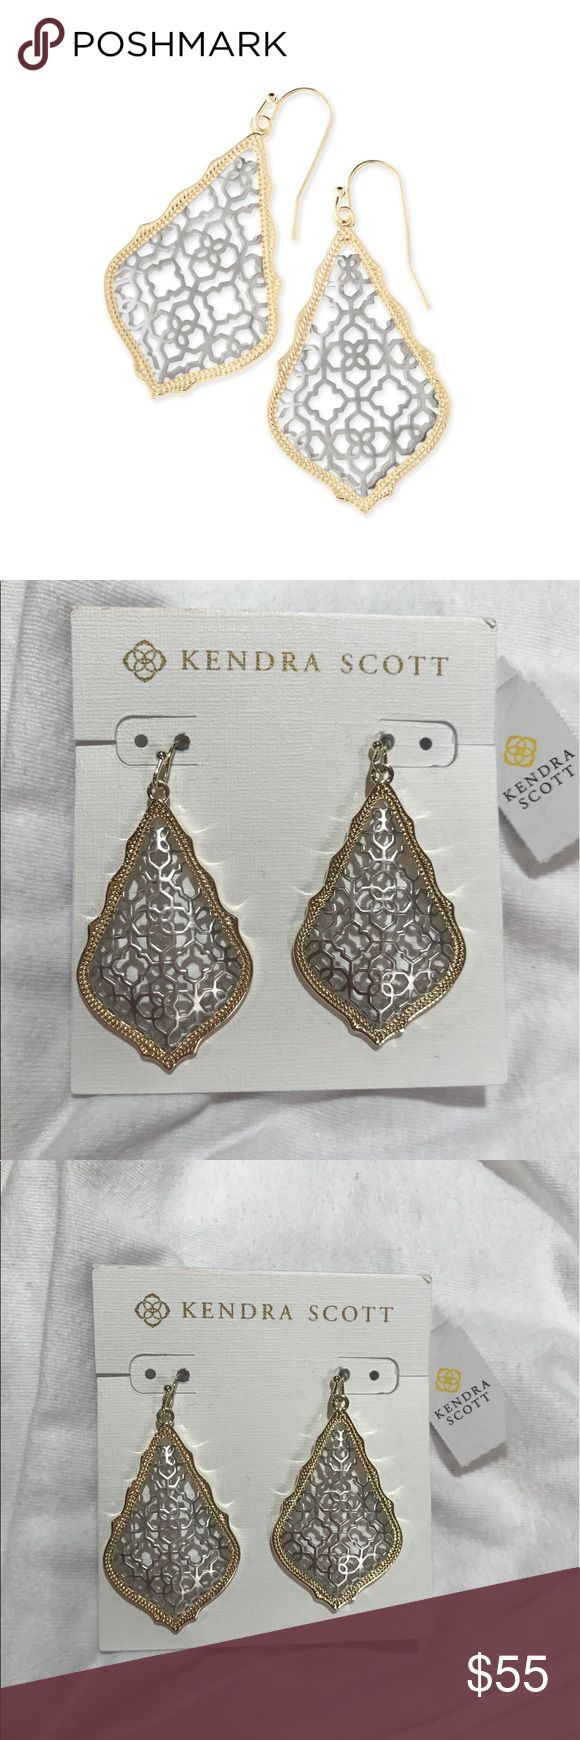 KENDRA SCOTT brand new addie earrings + box!!! KENDRA SCOTT brand new addie earrings + box!!! Kendra Scott Jewelry Earrings